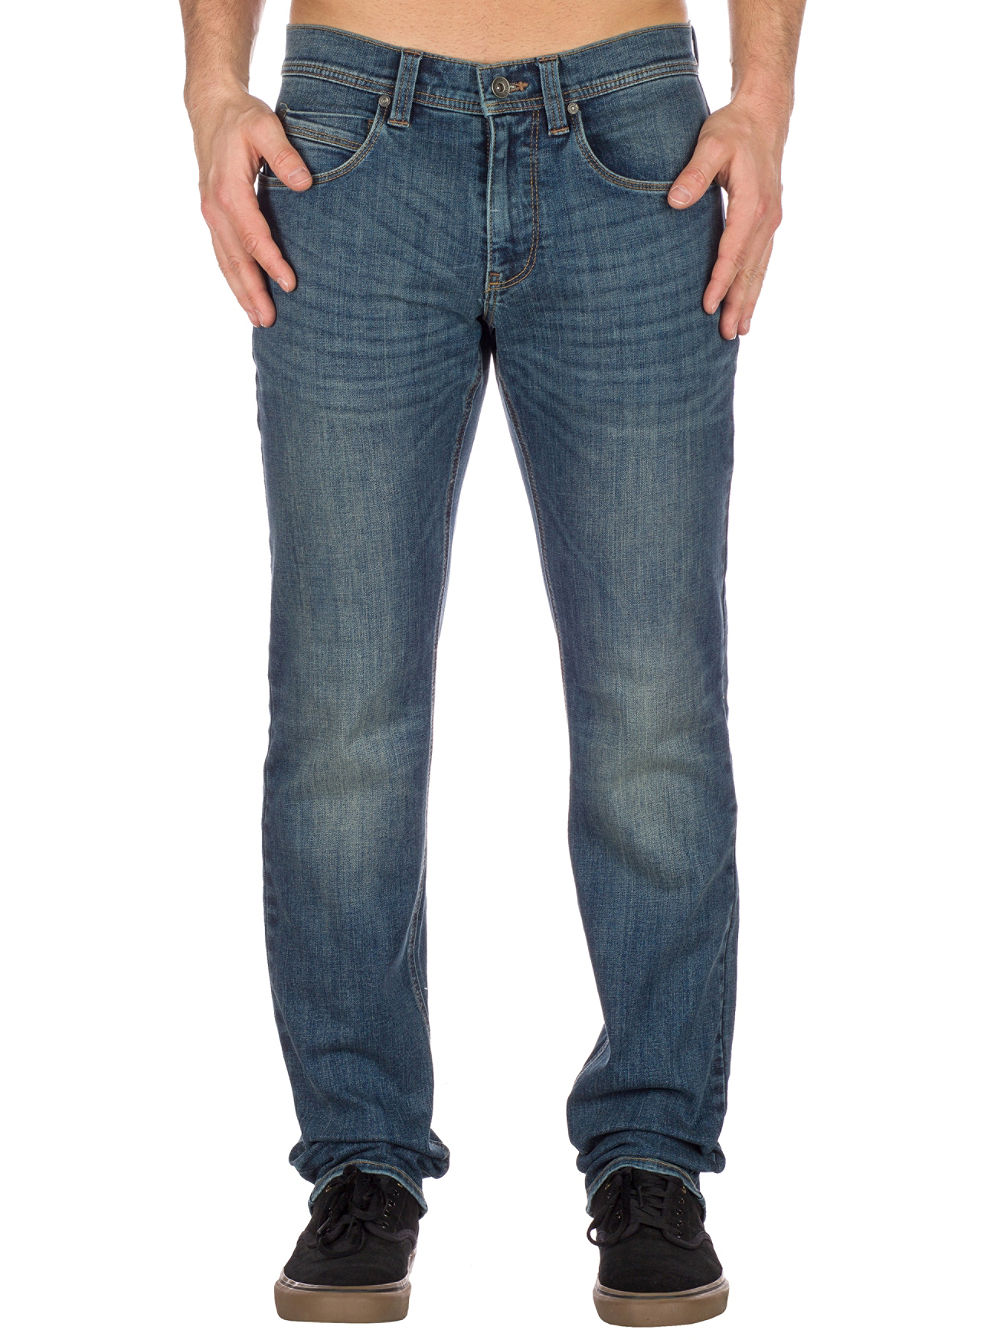 Skeletor Stretch Jeans